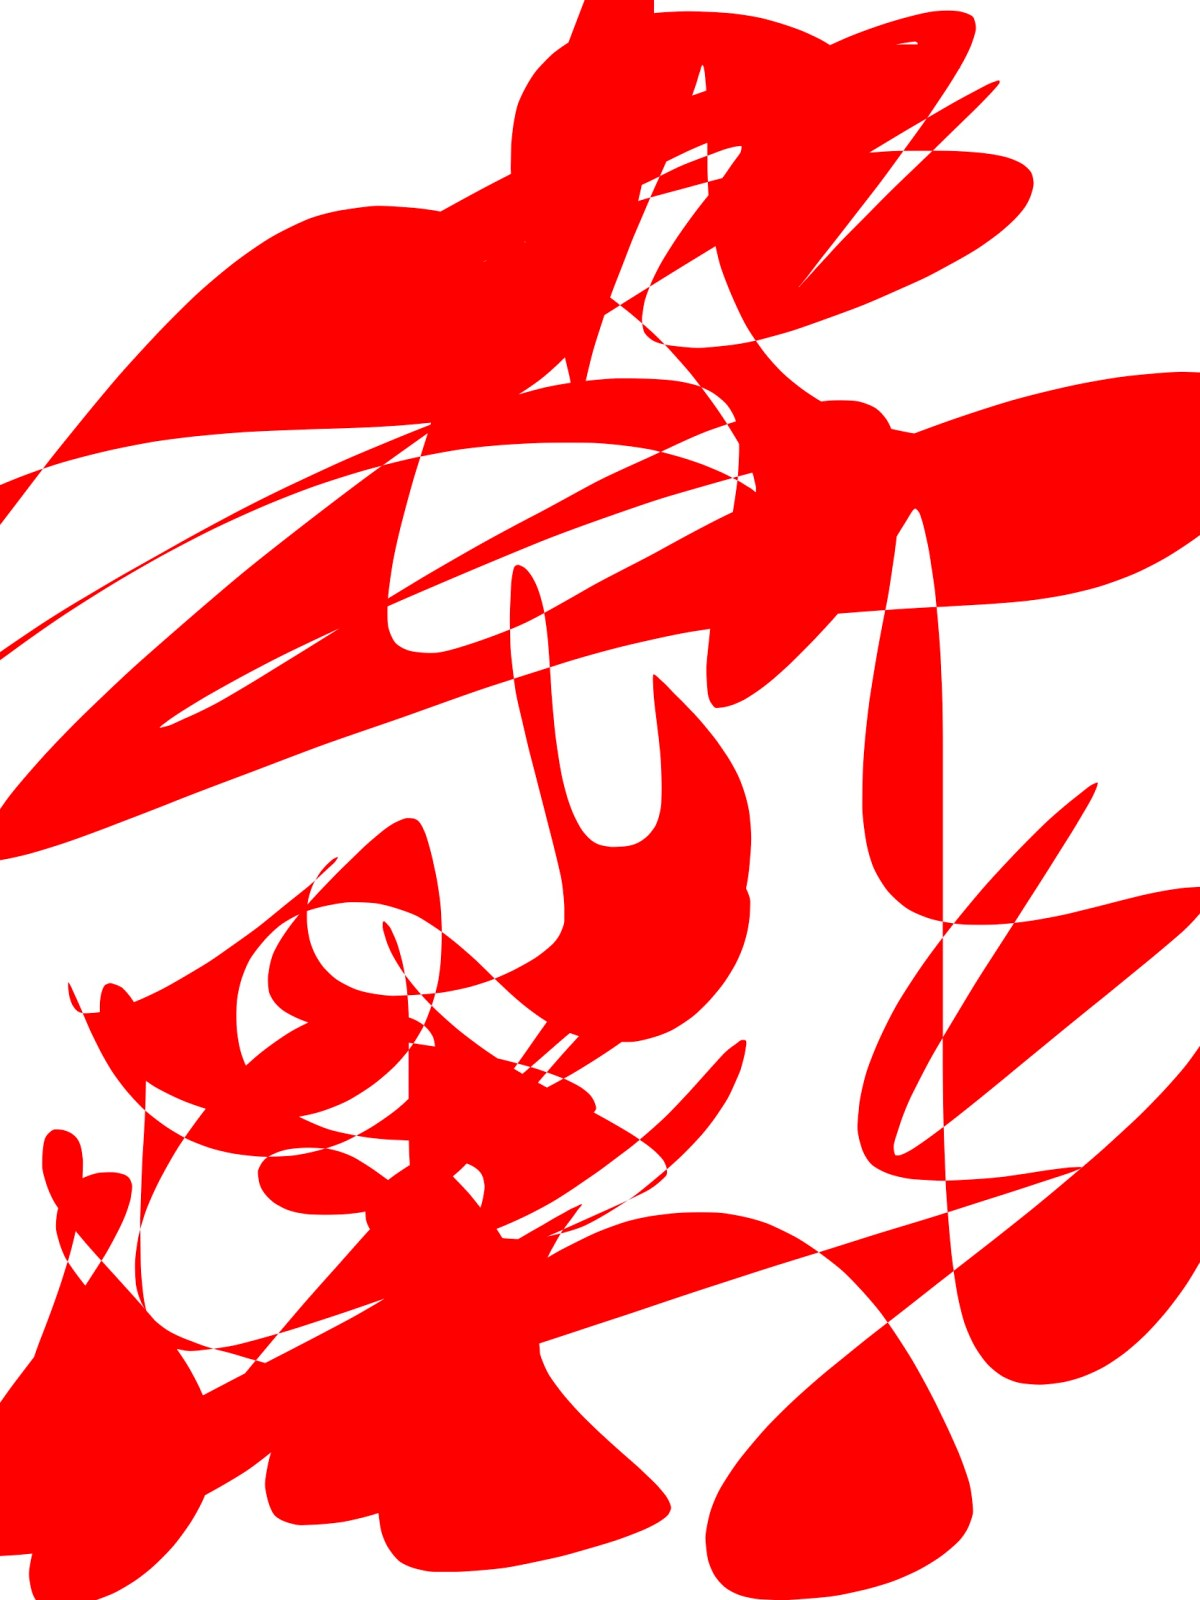 Visual artist red white abstract ERIC KIM